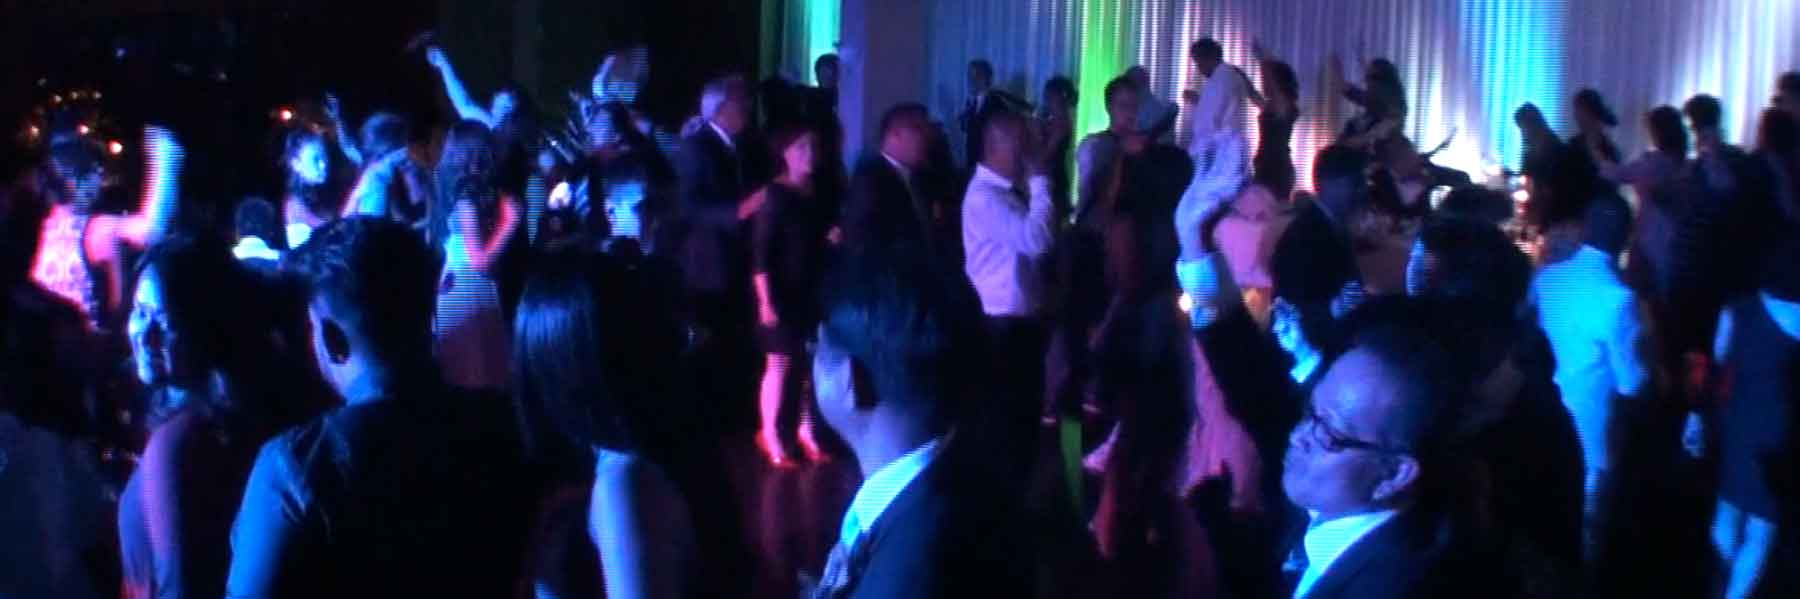 Wedding-Dj-Toronto-Packed-Dancefloor-Bayview-Golf